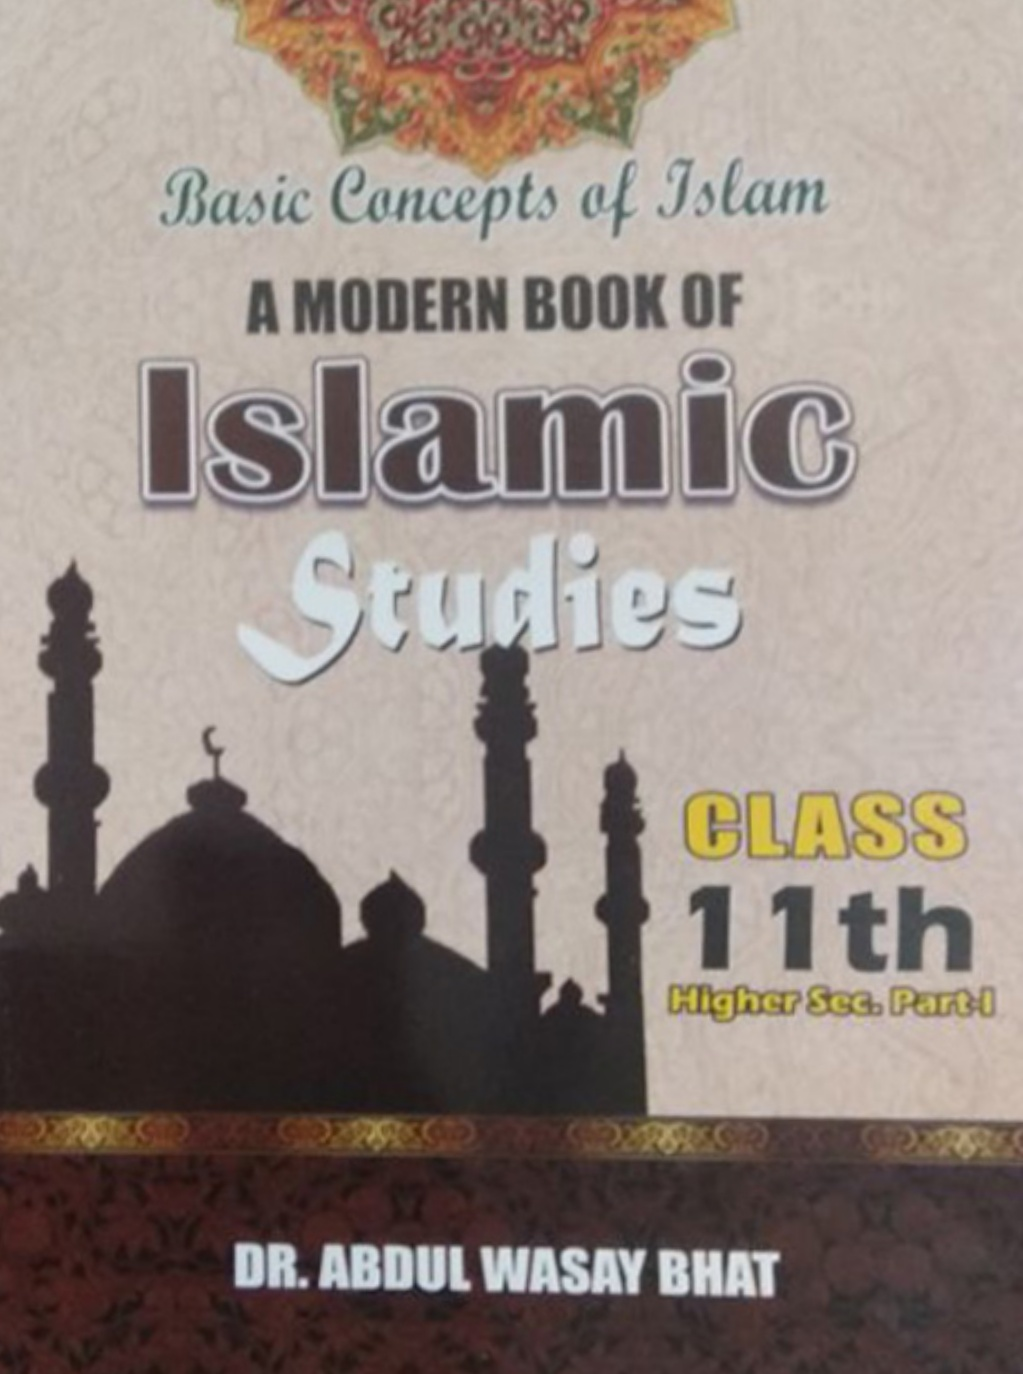 A Modern Book of Islamic Studies for Class 11th